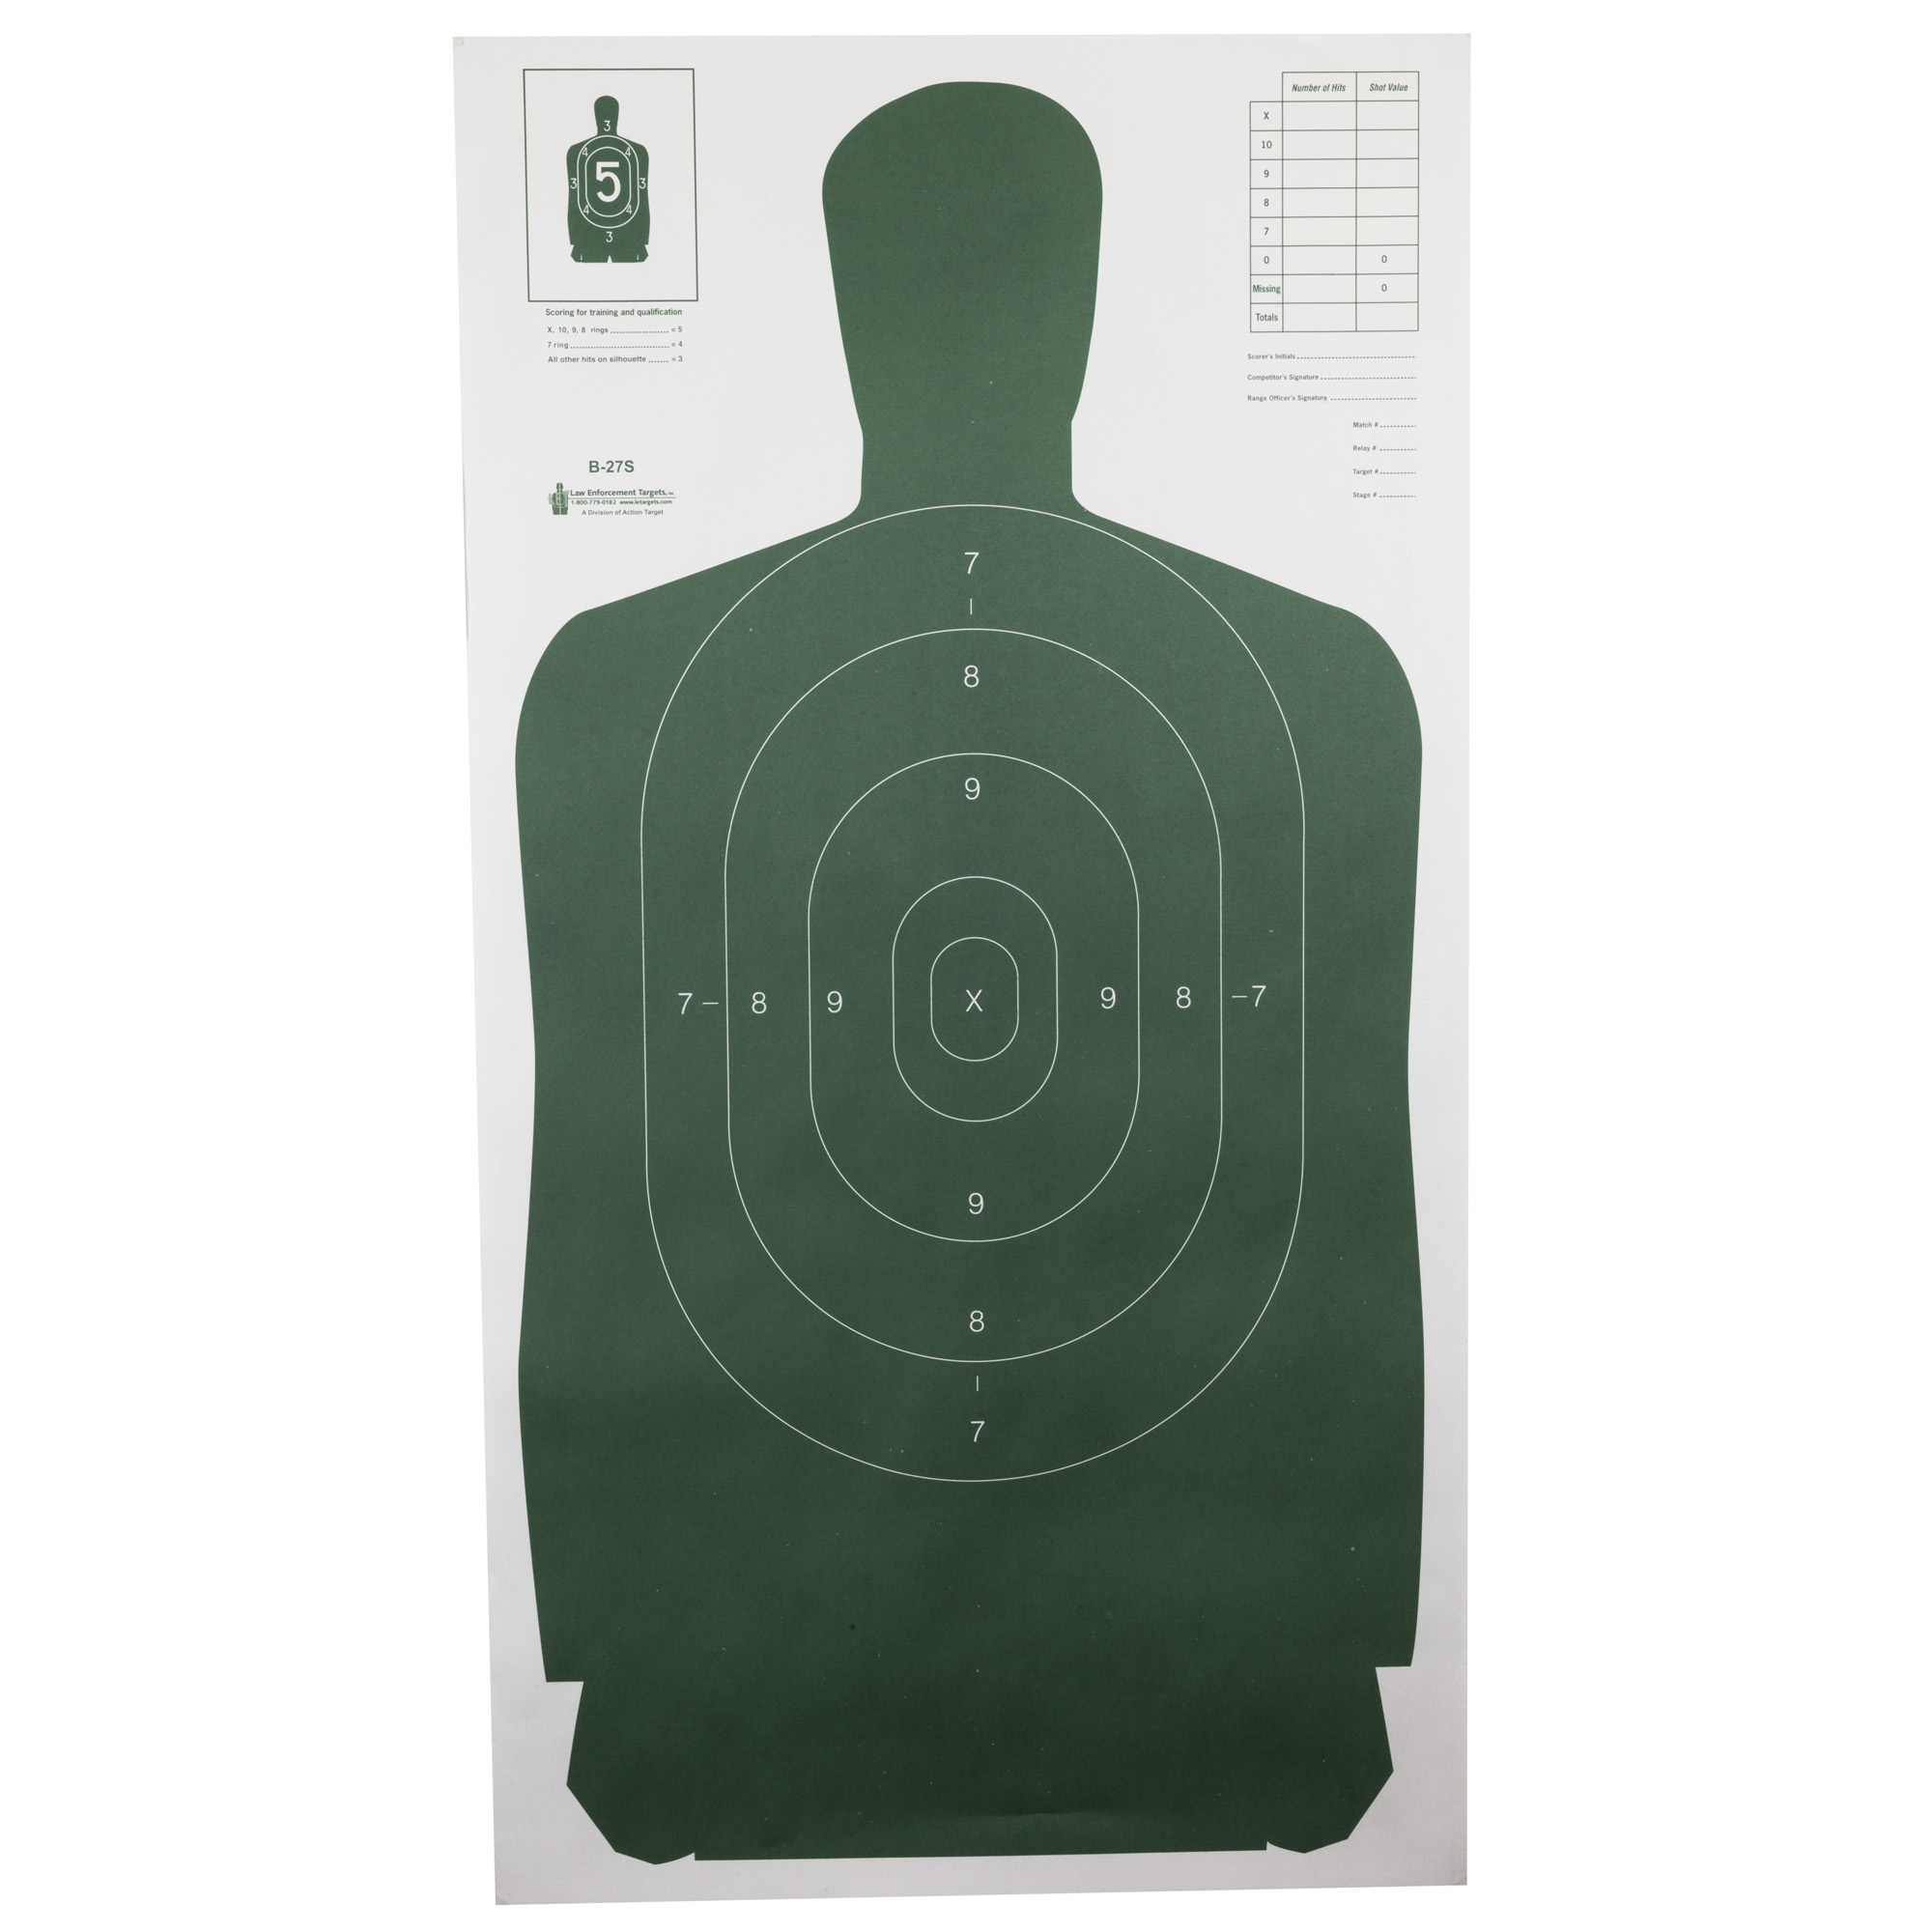 """Action Target provides unique solutions to the commercial range owner"""" as well as to law enforcement and military organizations. Whether you're sighting in a rifle"""" conducting law enforcement training"""" or setting up for a 3-gun competition"""" Action Target has a target that meets your needs."""